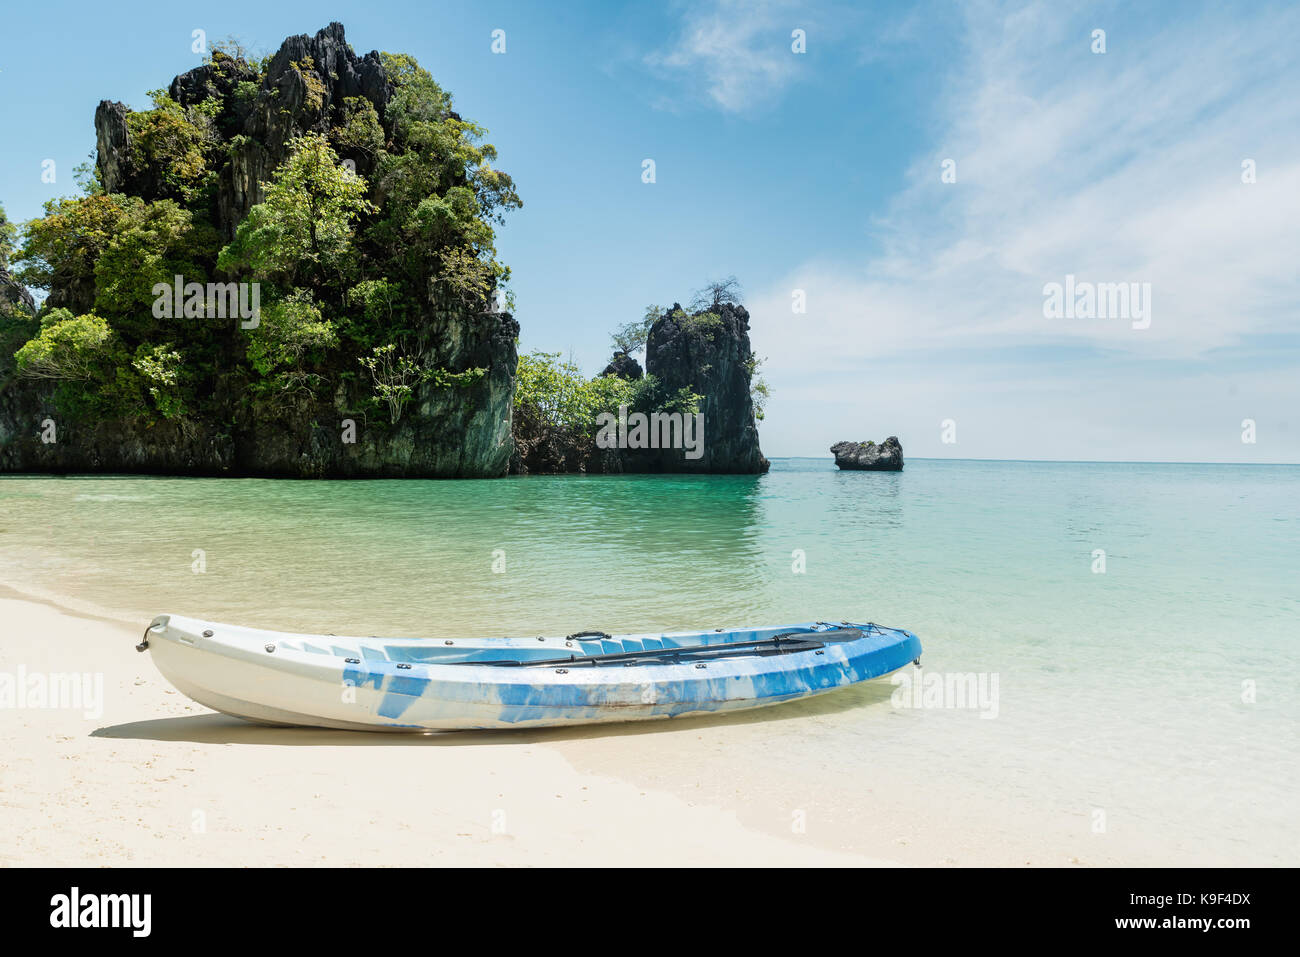 Blue kayaks on the tropical beach in Phuket, Thailand. Summer, Vacation and Travel concept. - Stock Image